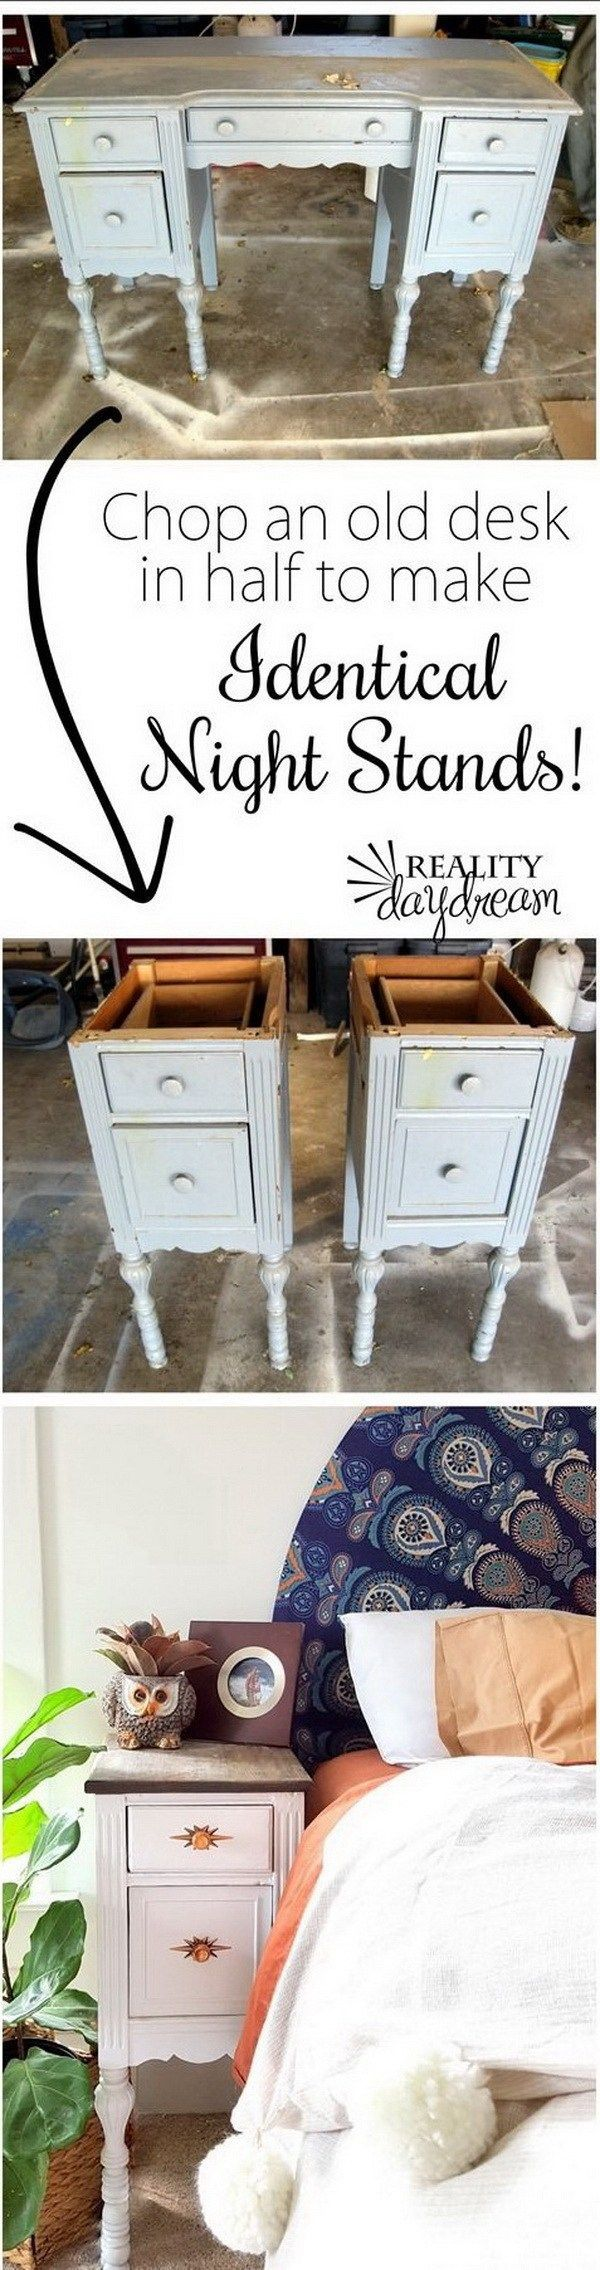 Diy Bedside Table Night Stands Thrift Stores